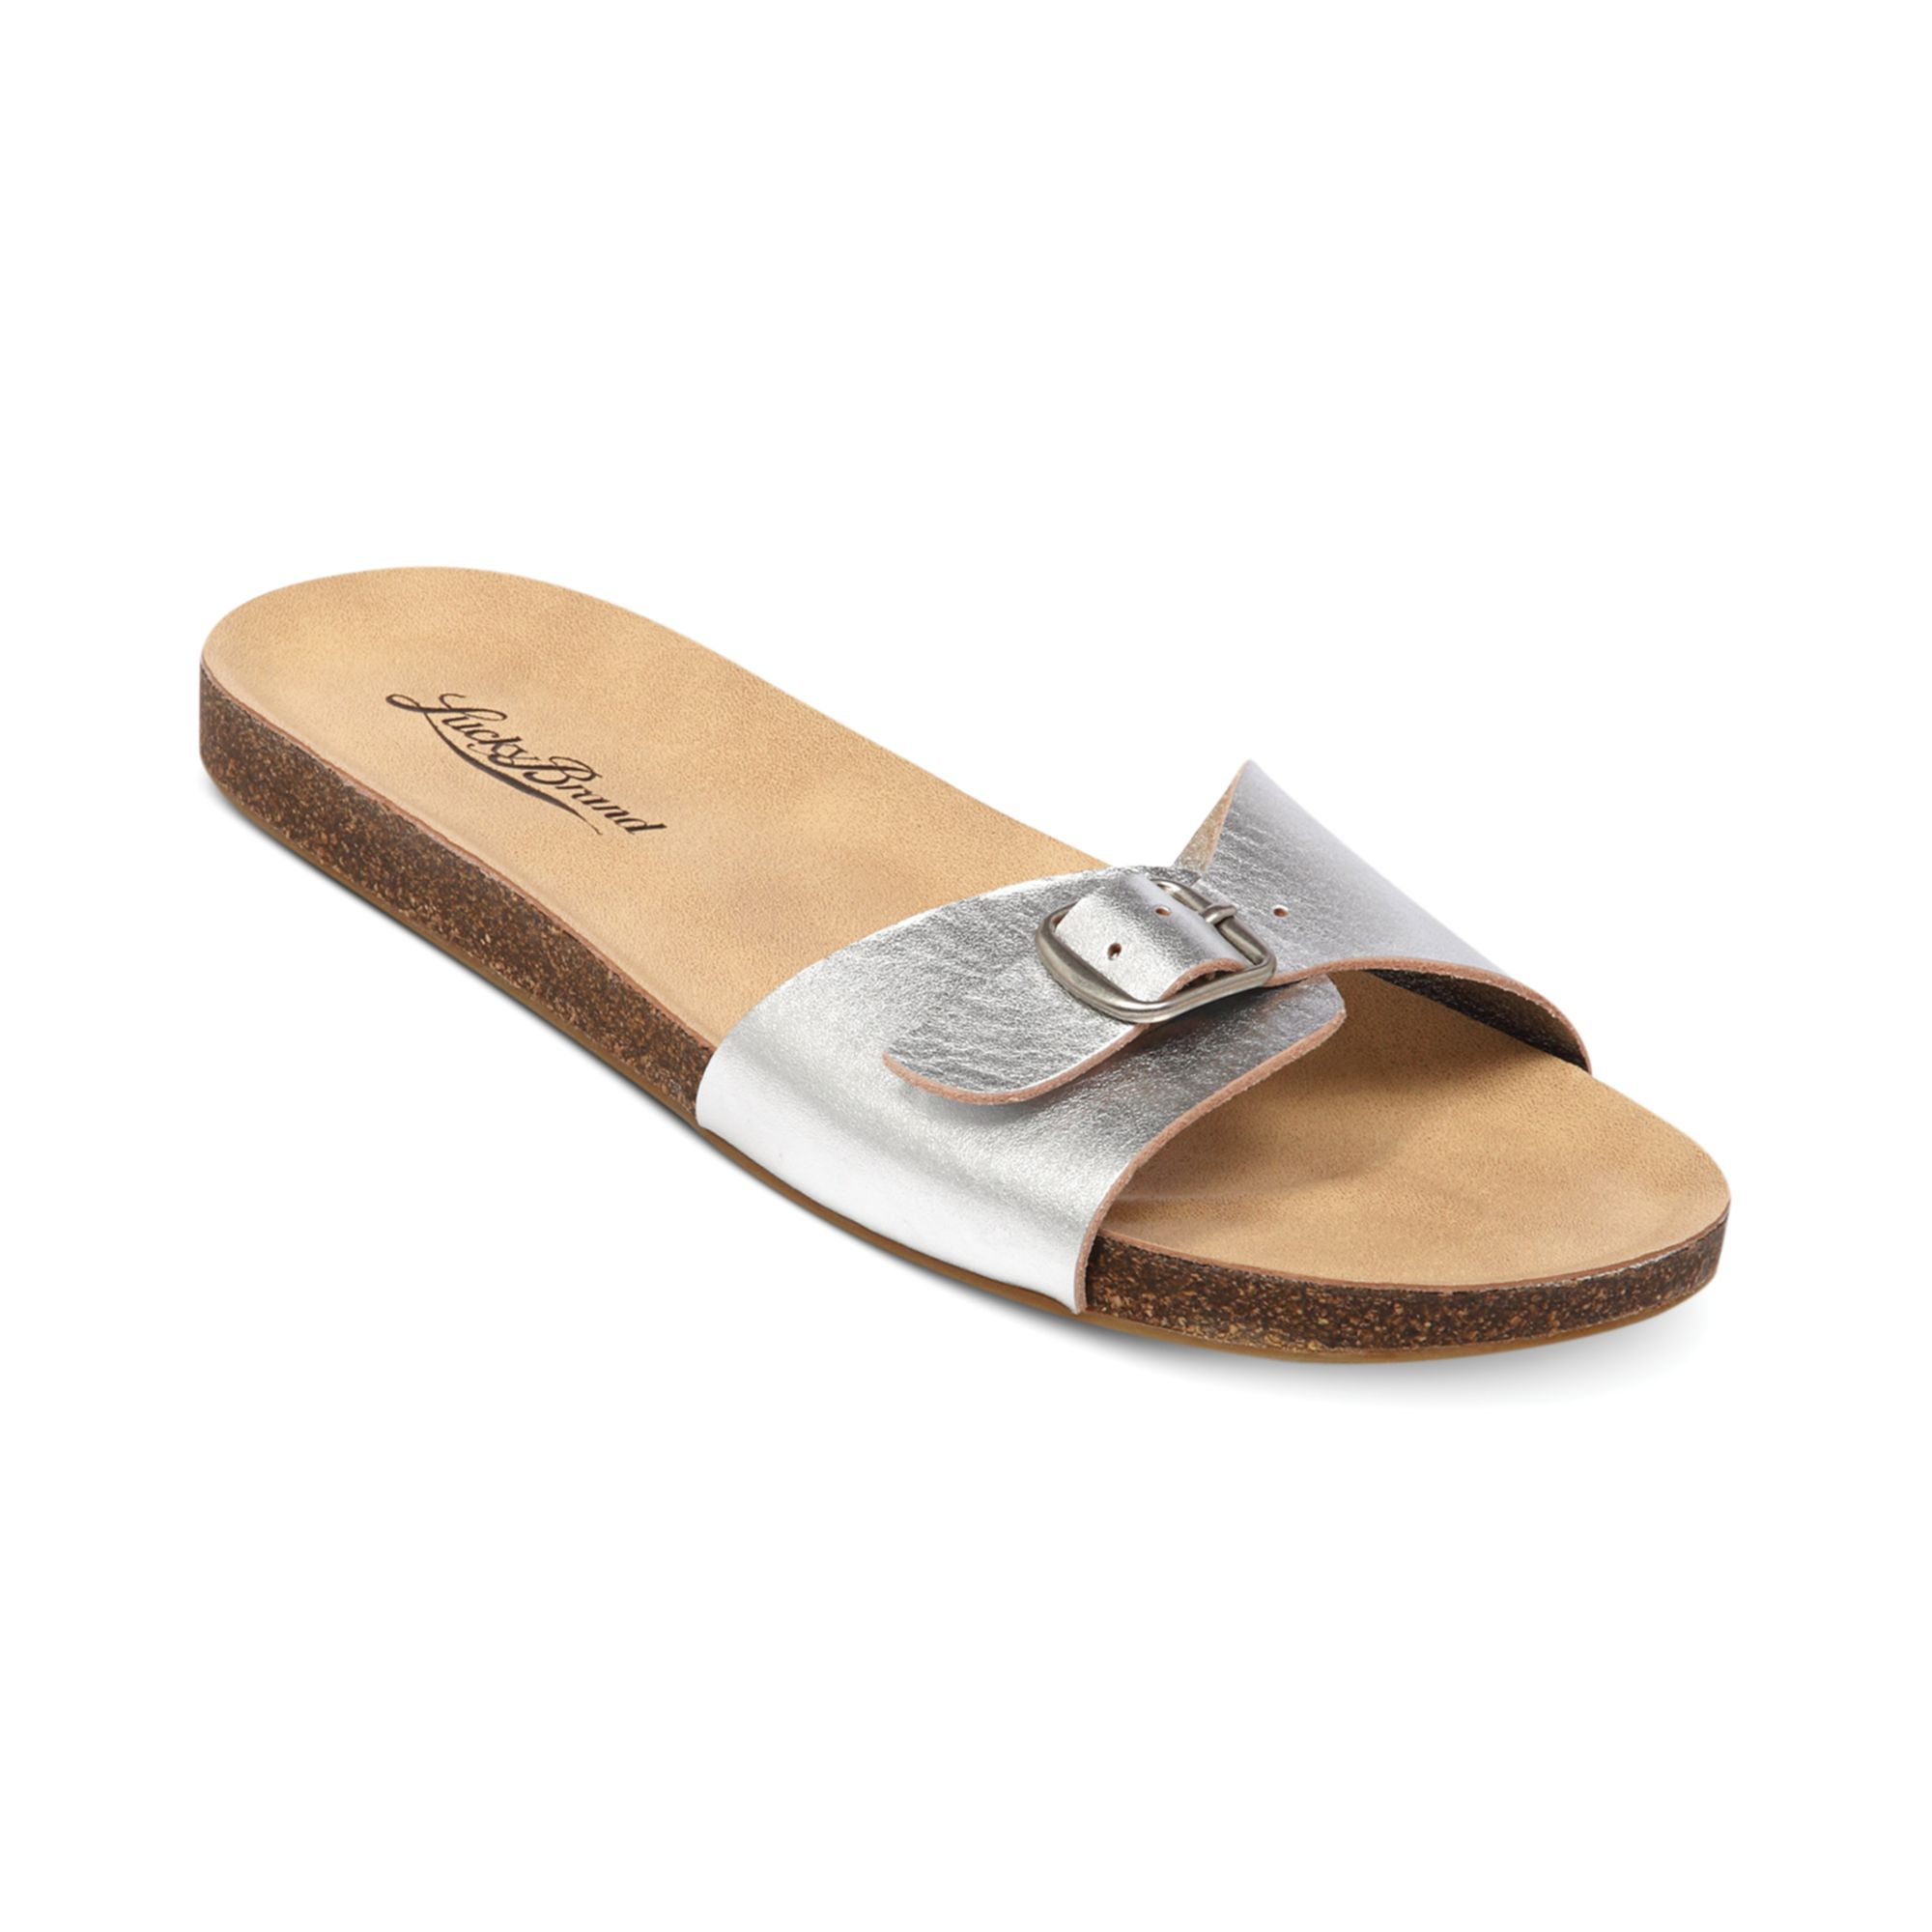 Womens slide on sandals